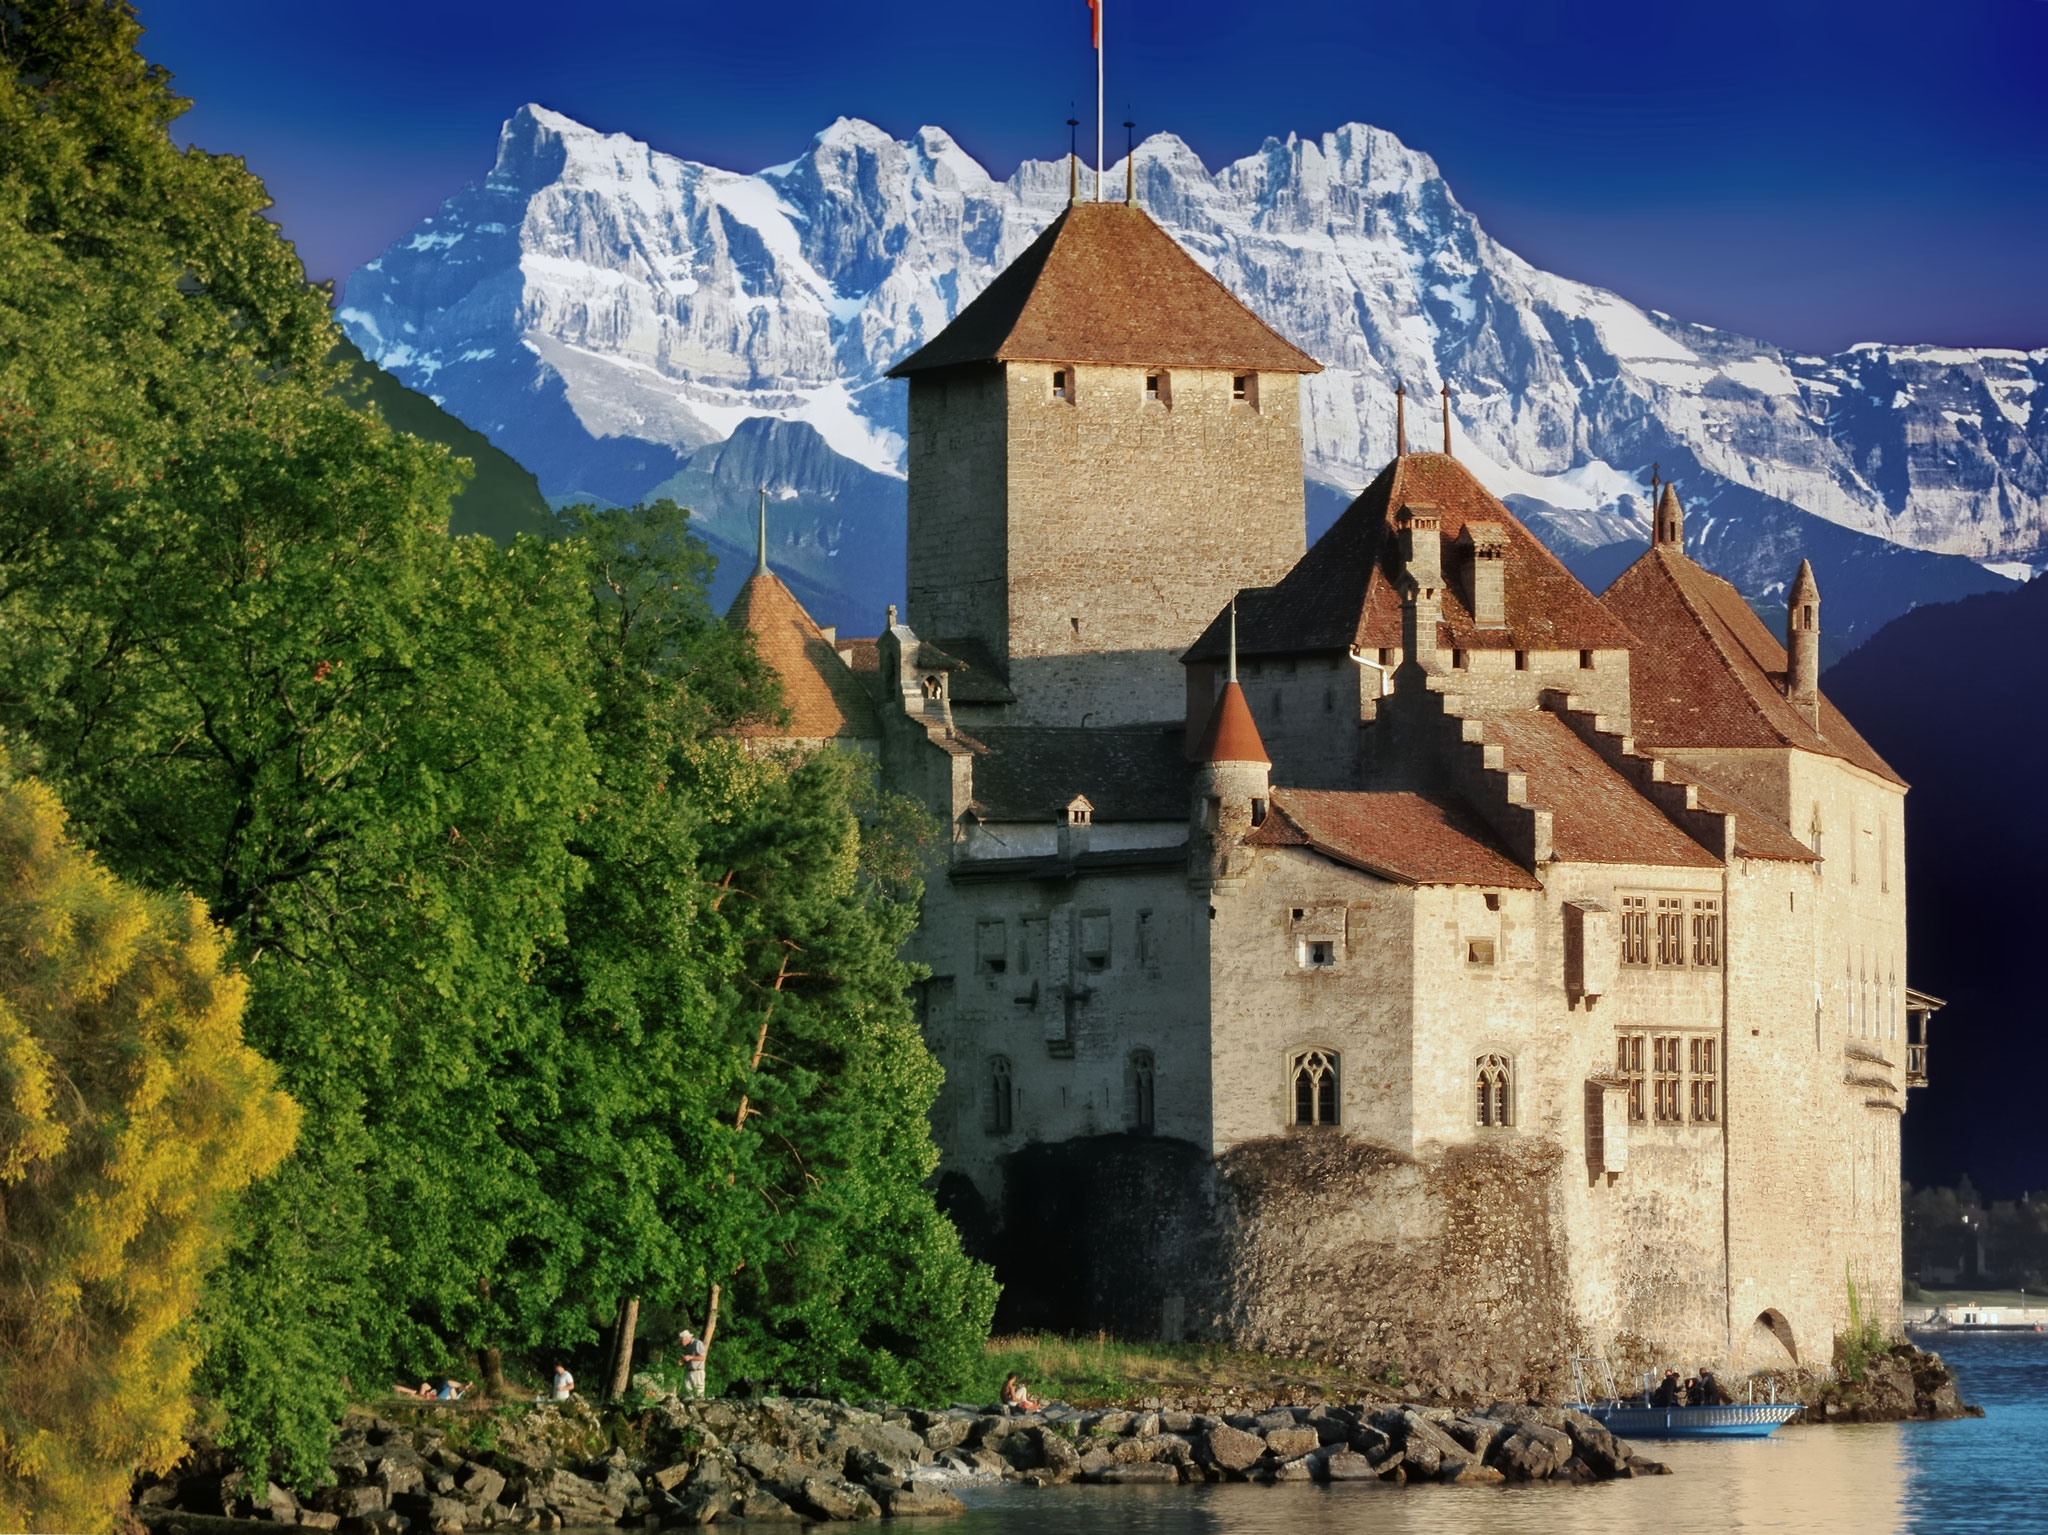 Chateau de chillon (visite ok)